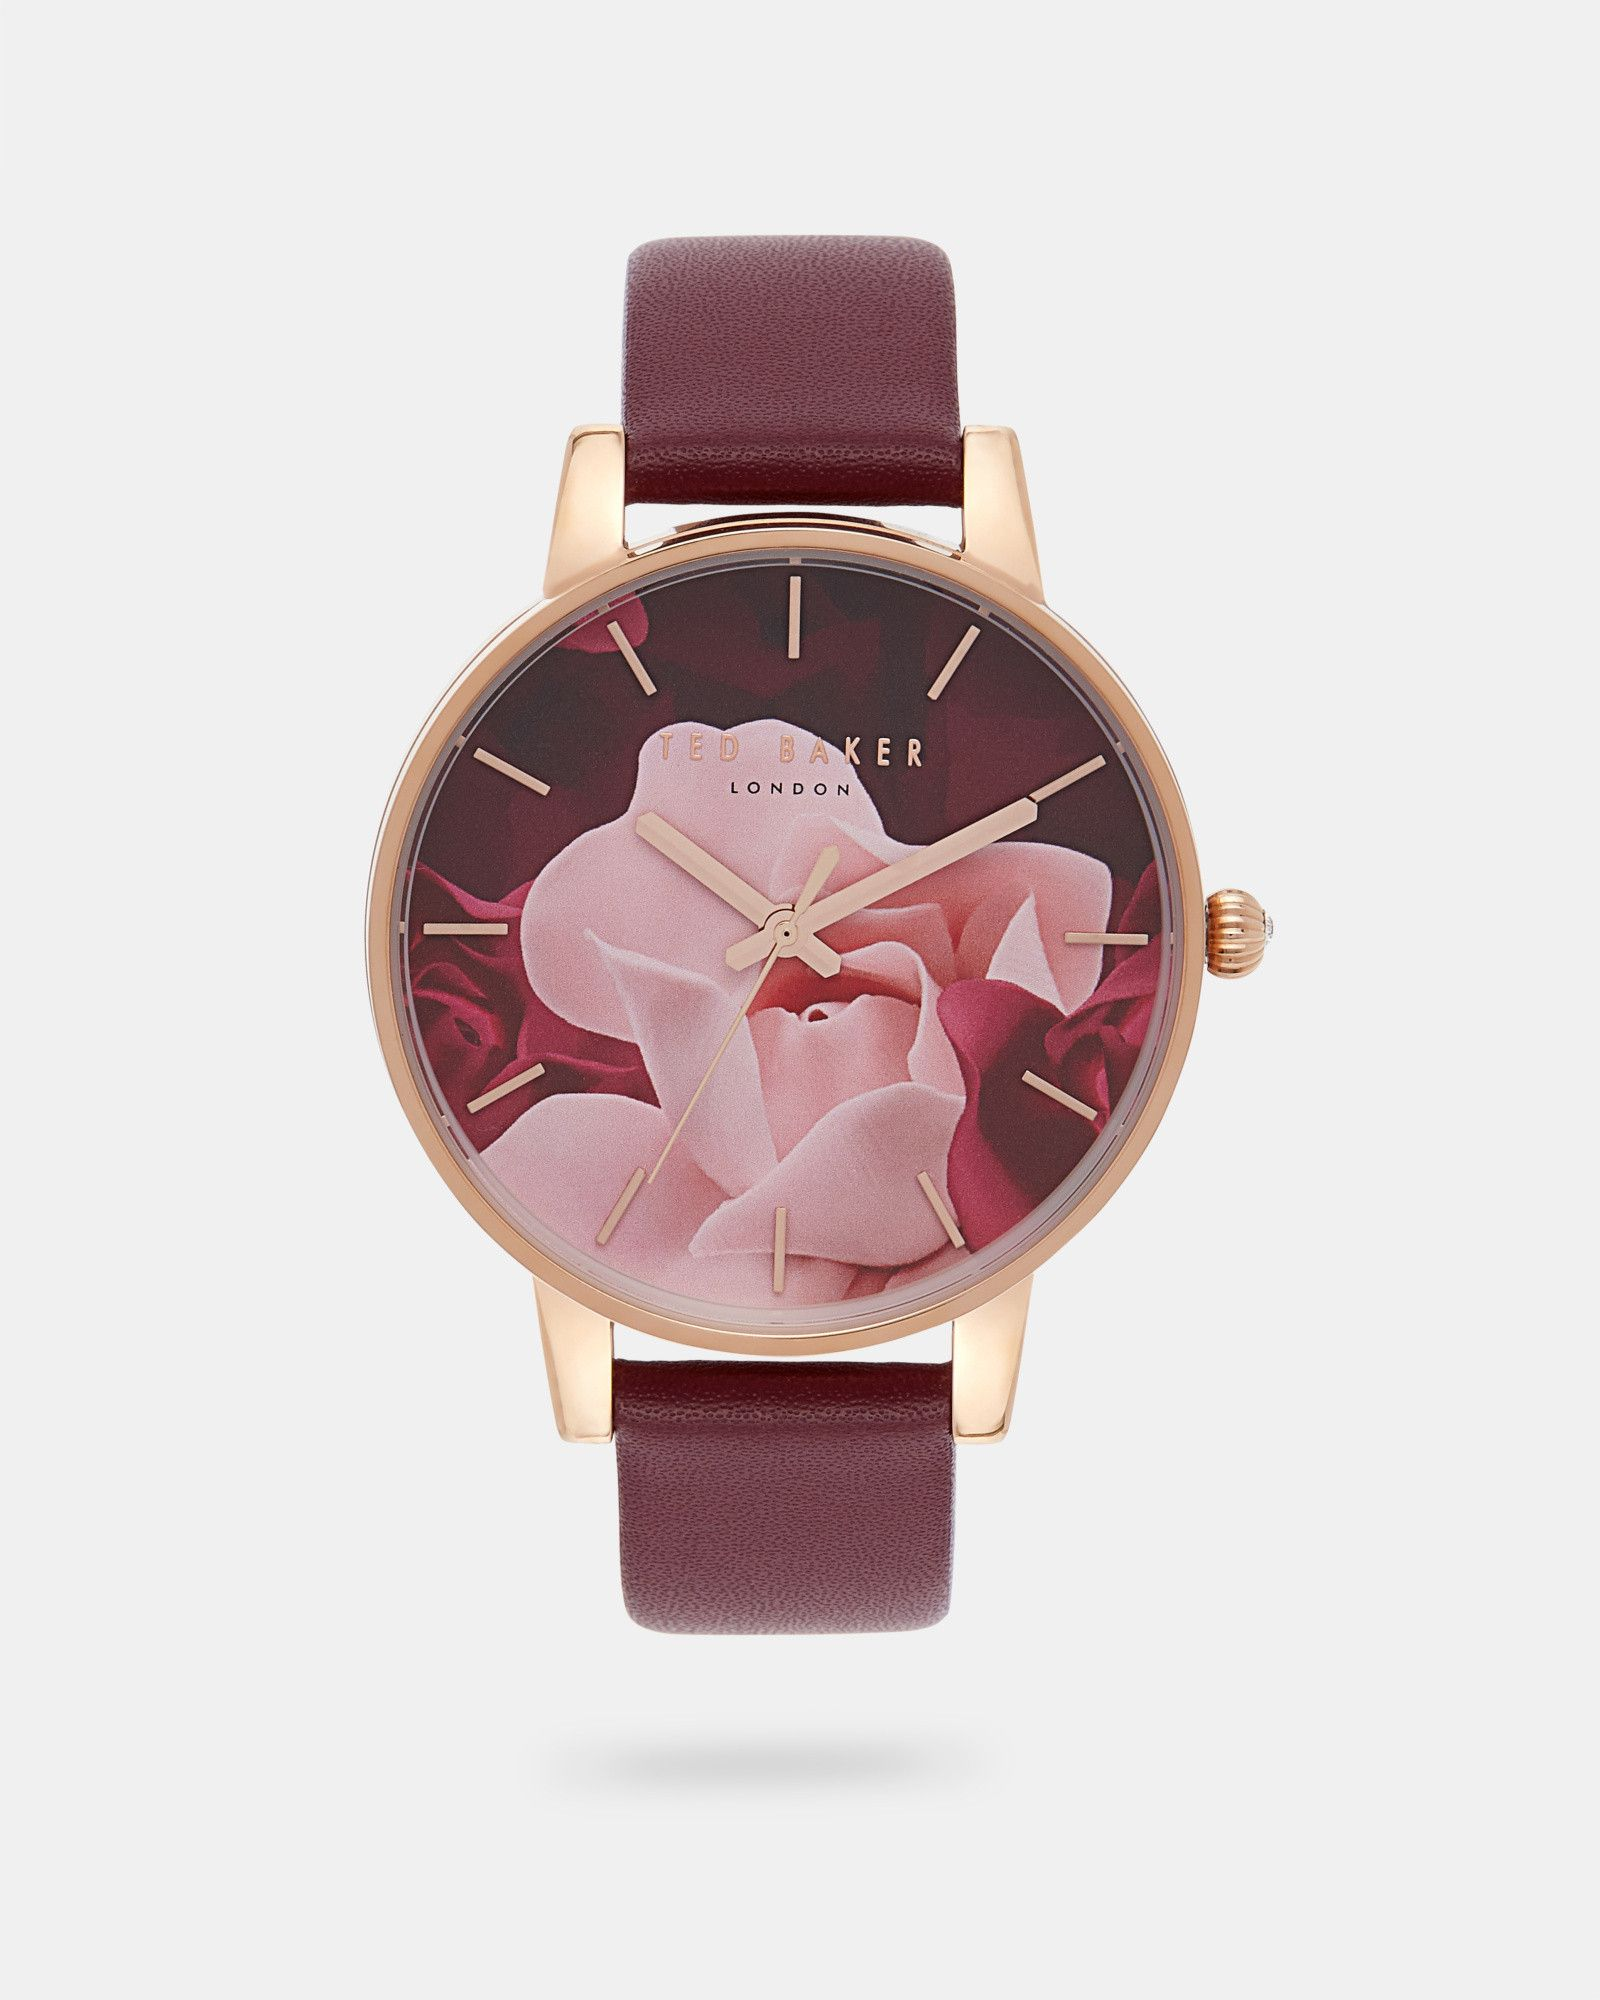 amp kiely image strap red ivy watches orla watch black leather maroon printed